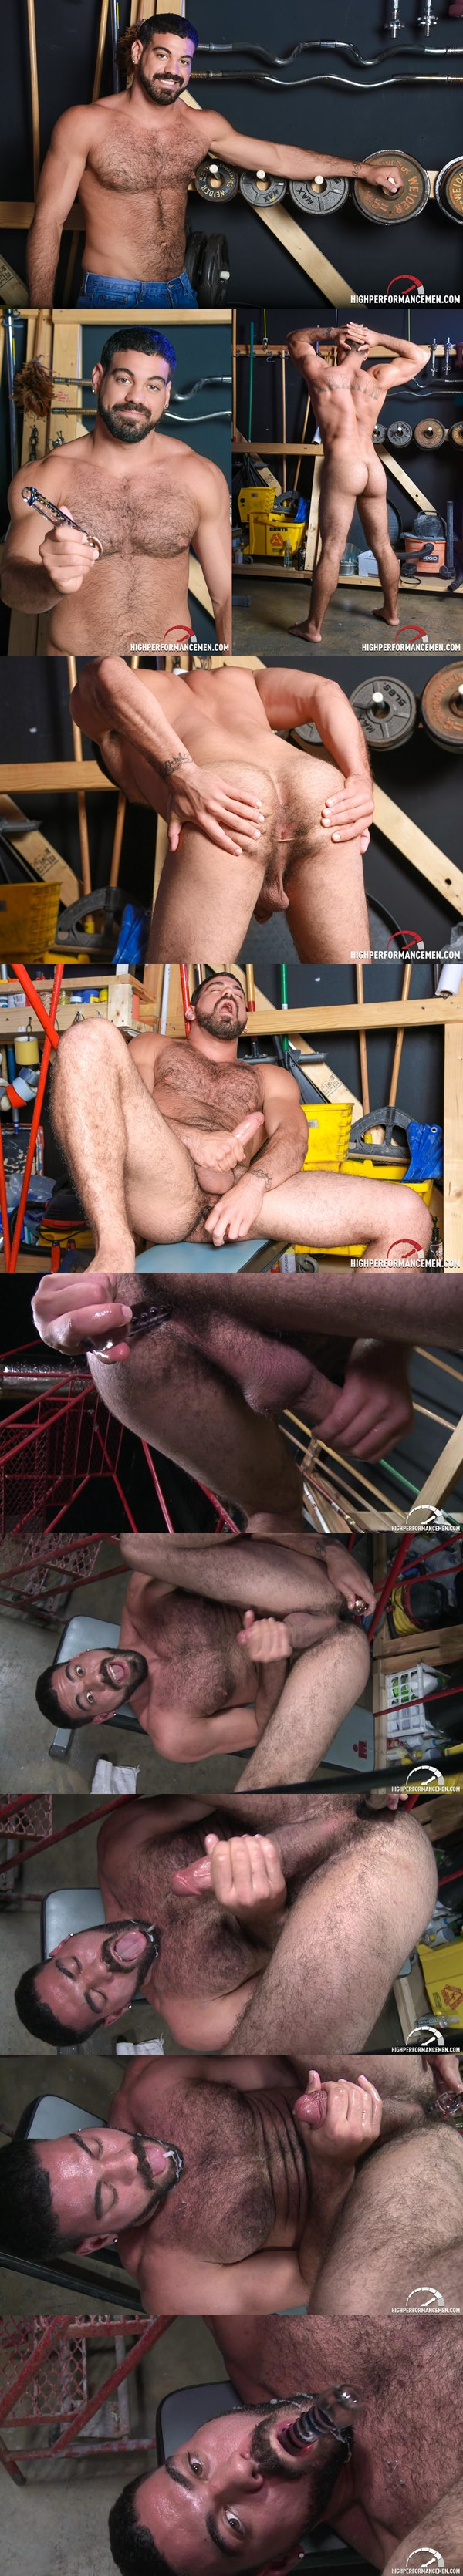 Ricky Larkin 1st Time with a Toy and cums into his mouth at Highperformancemen 02